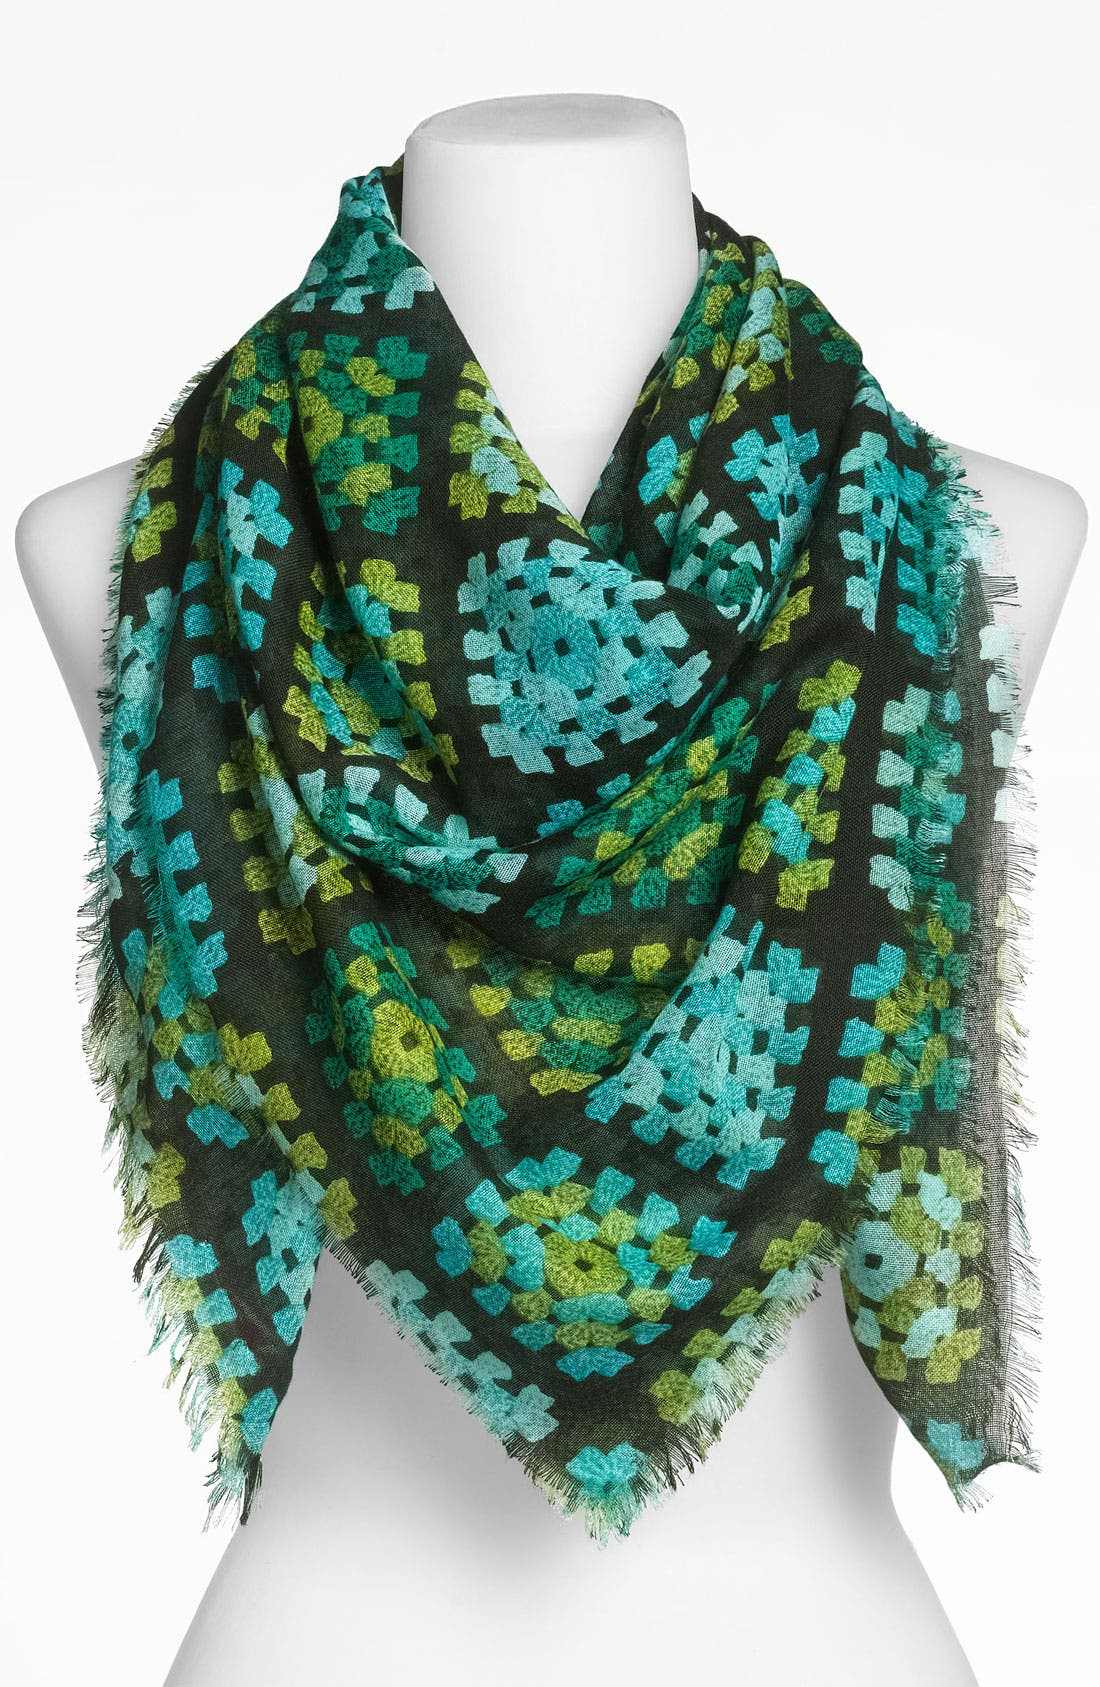 Alternate Image 1 Selected - Echo 'Granny Patchwork' Scarf